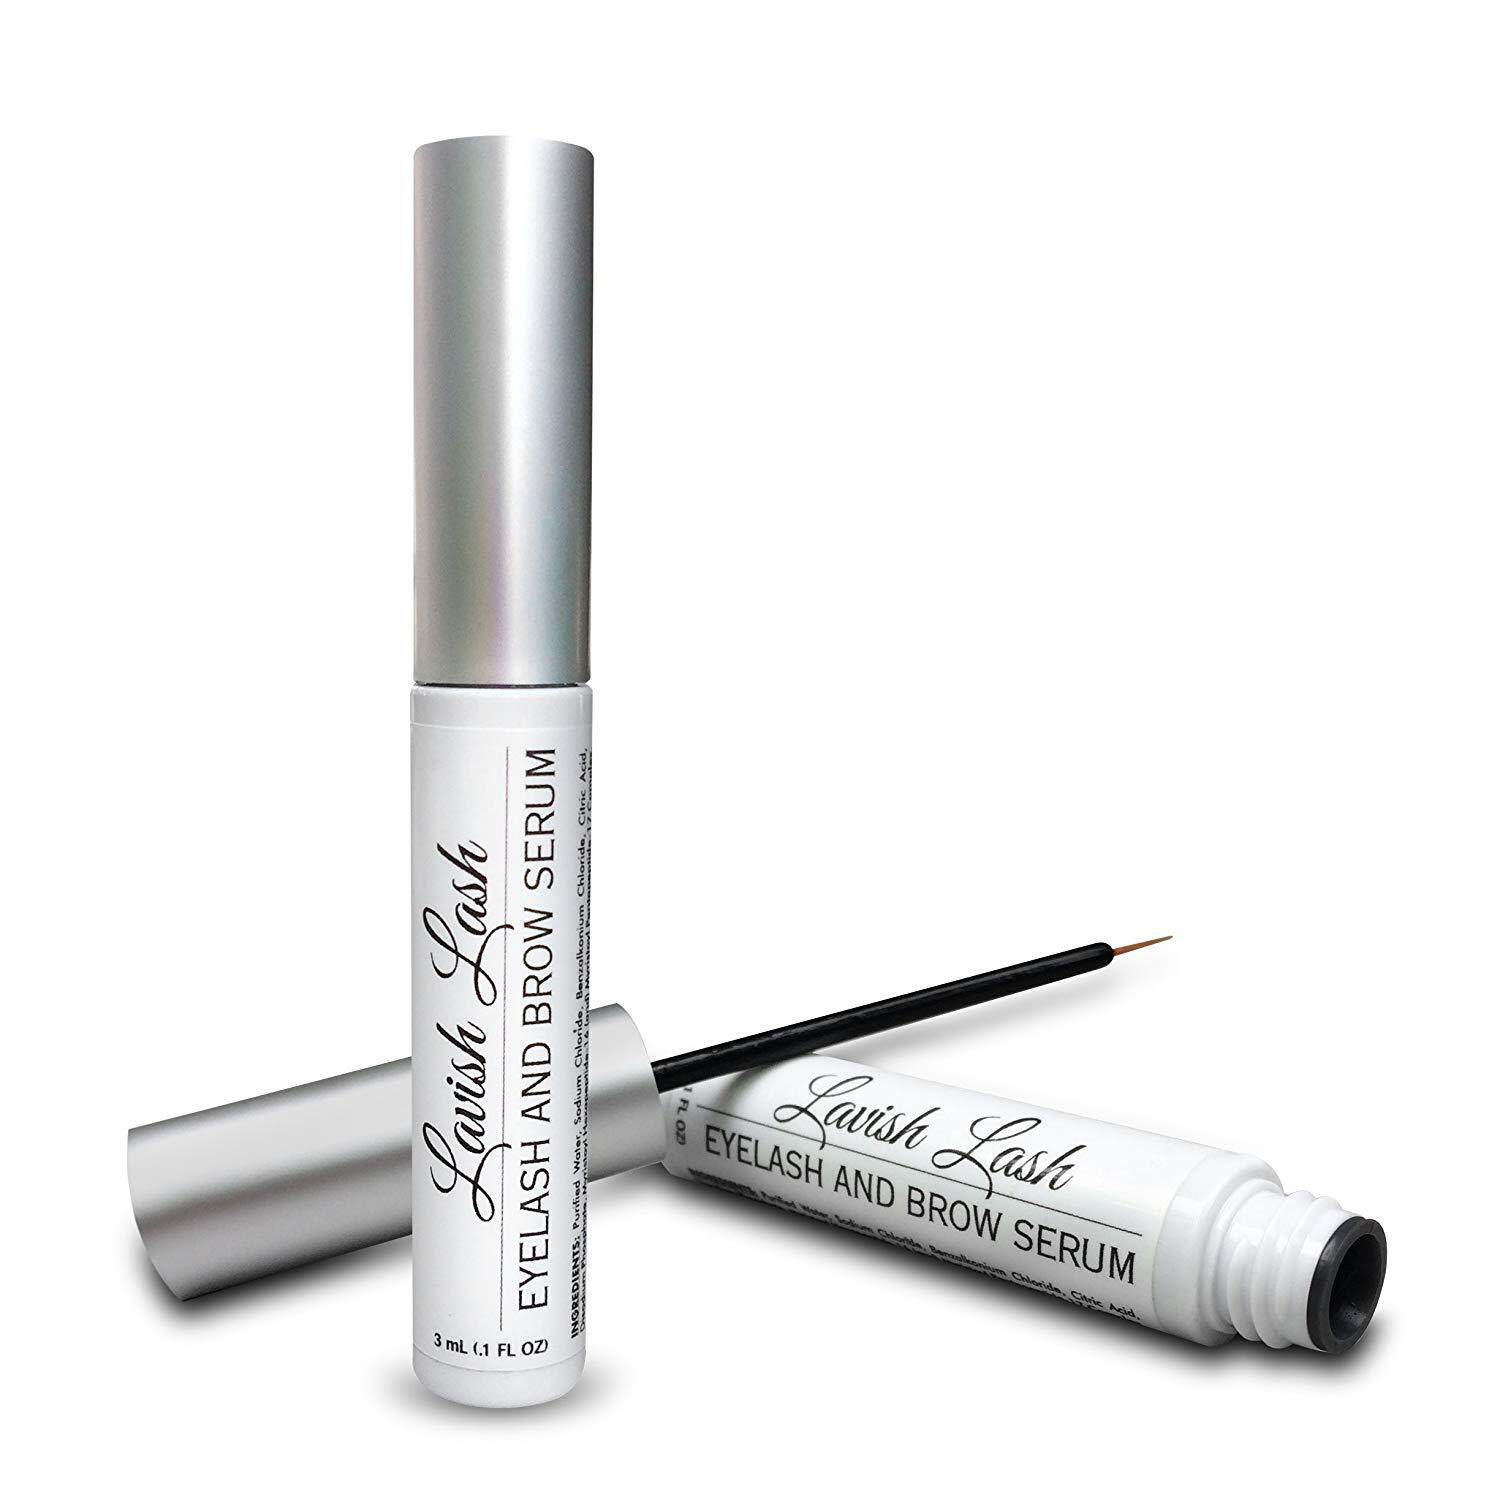 Hairgenics Lavish Lash – Eyelash Growth Enhancer & Brow Serum for Long, Luscious Lashes and Eyebrows